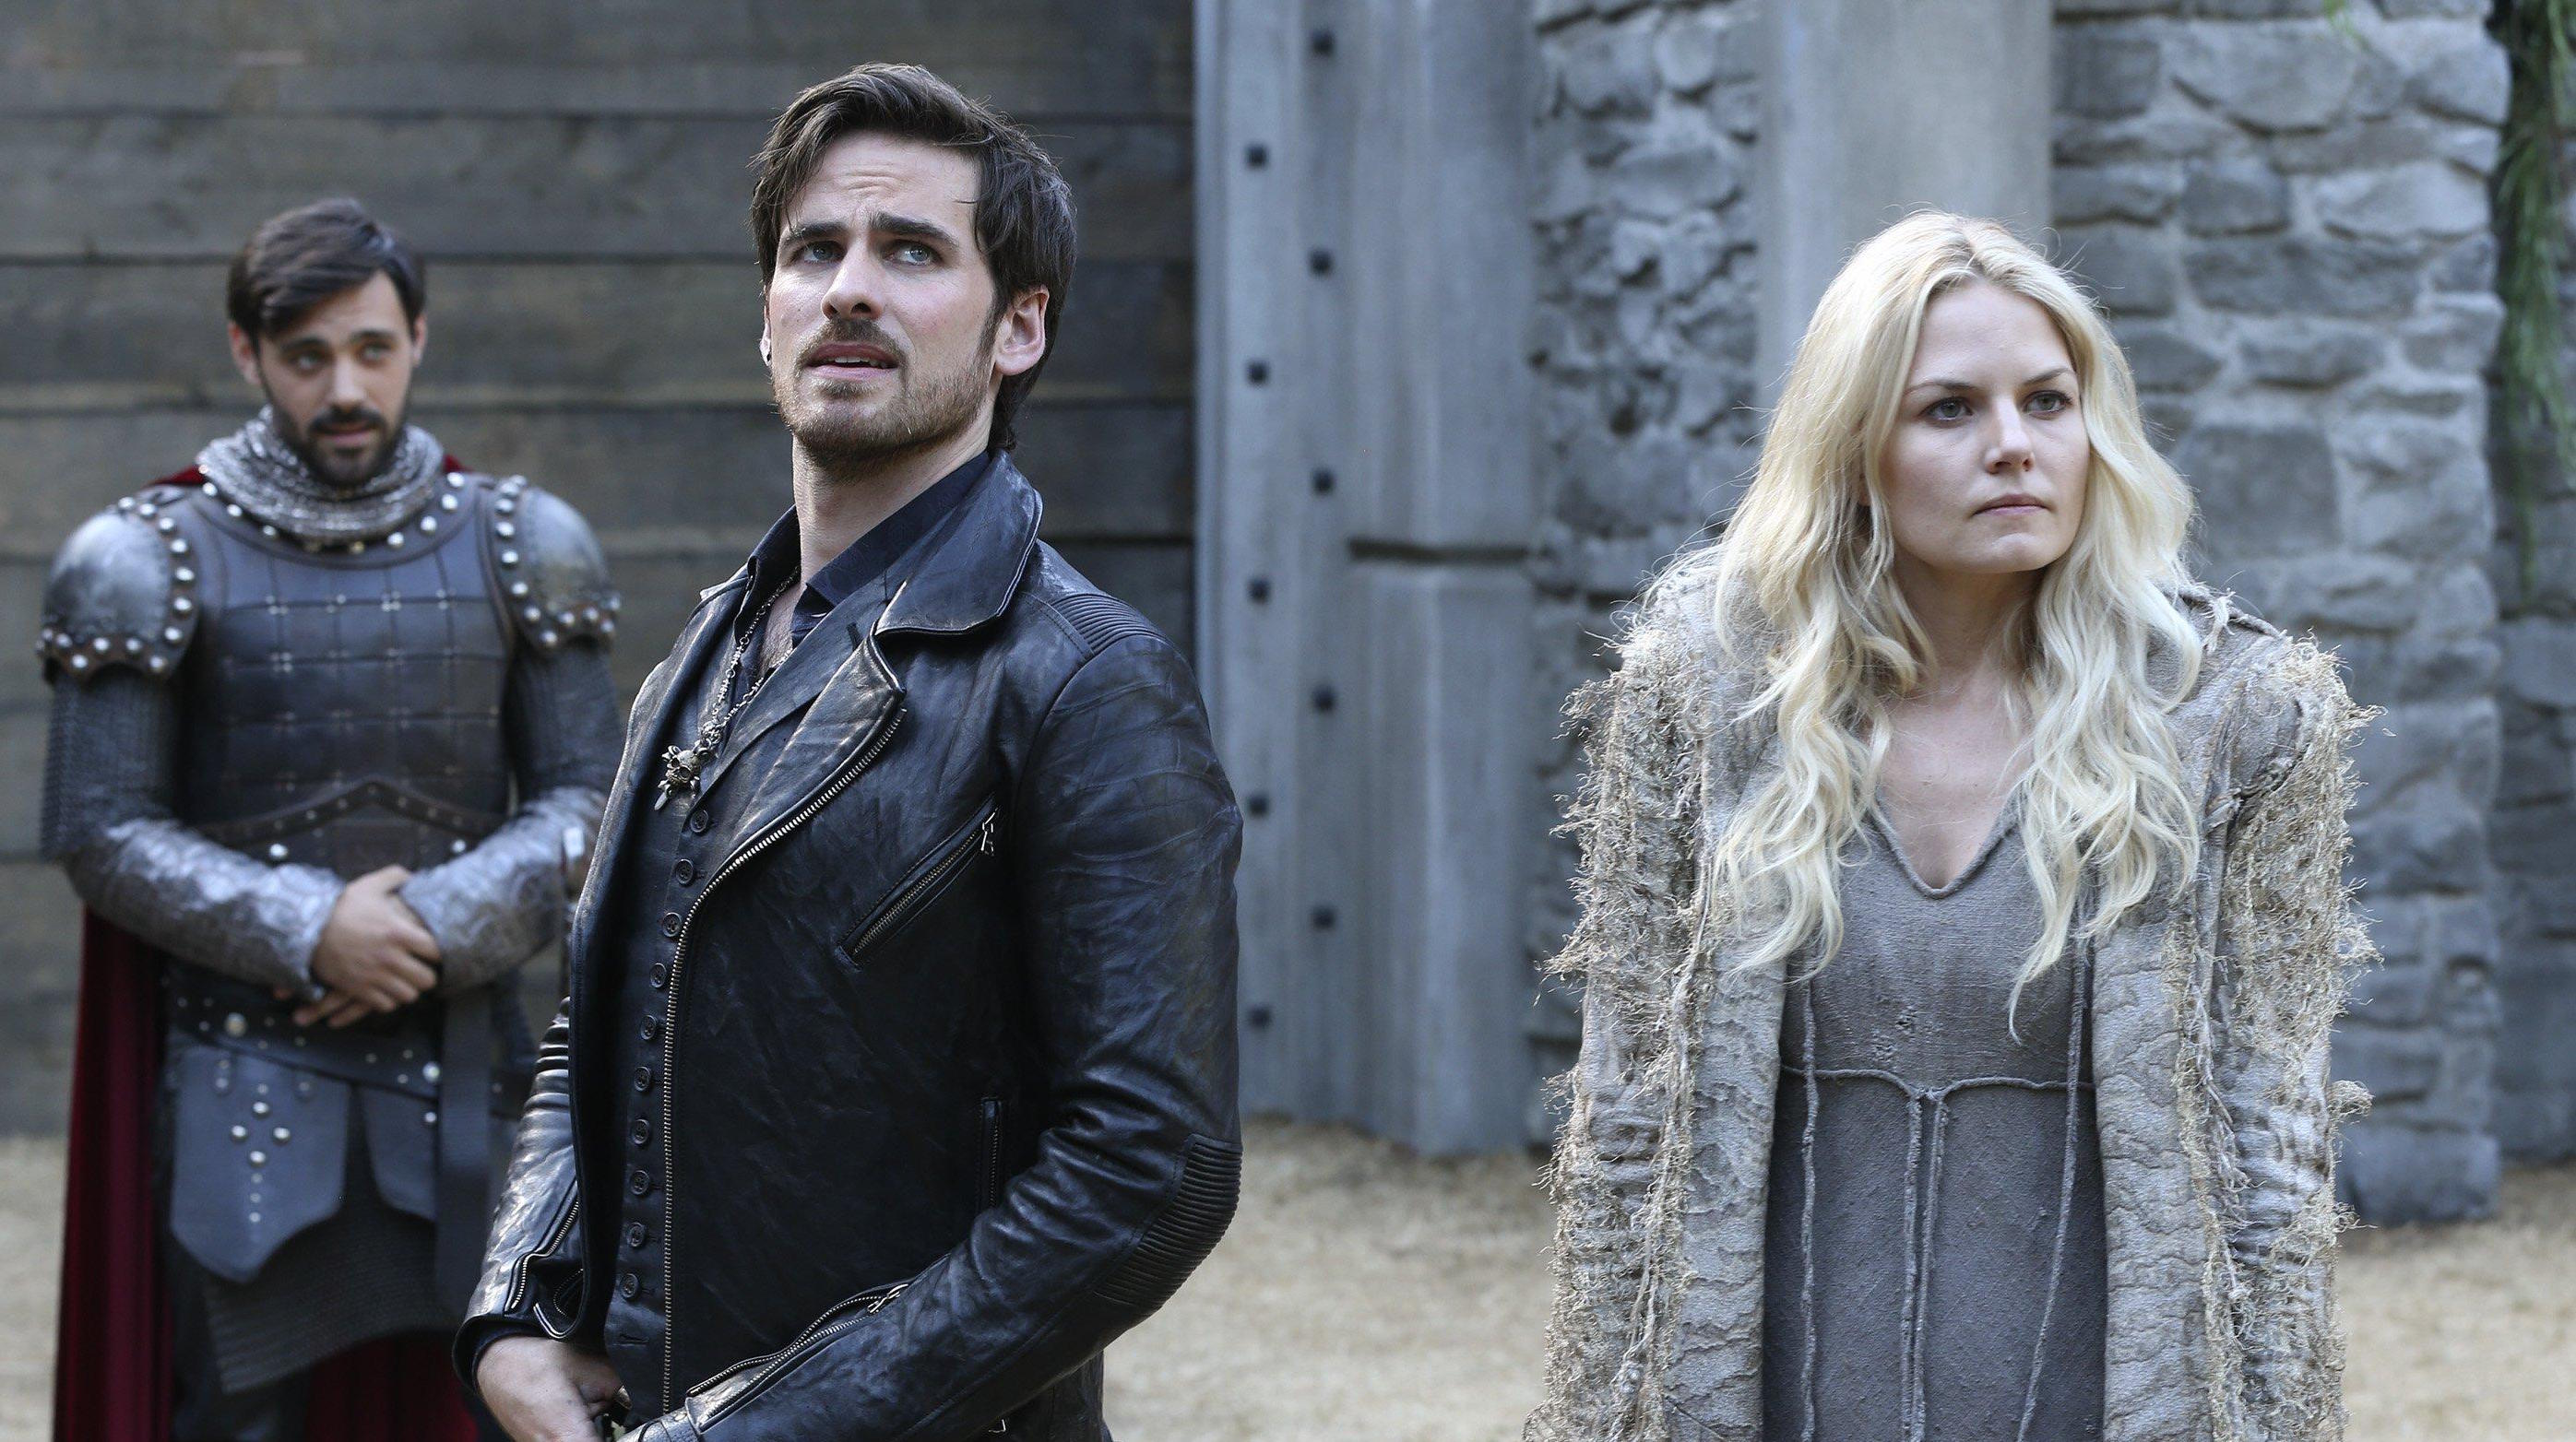 Once Upon A Time Season 5 Episode 2 Recap With Spoilers: The